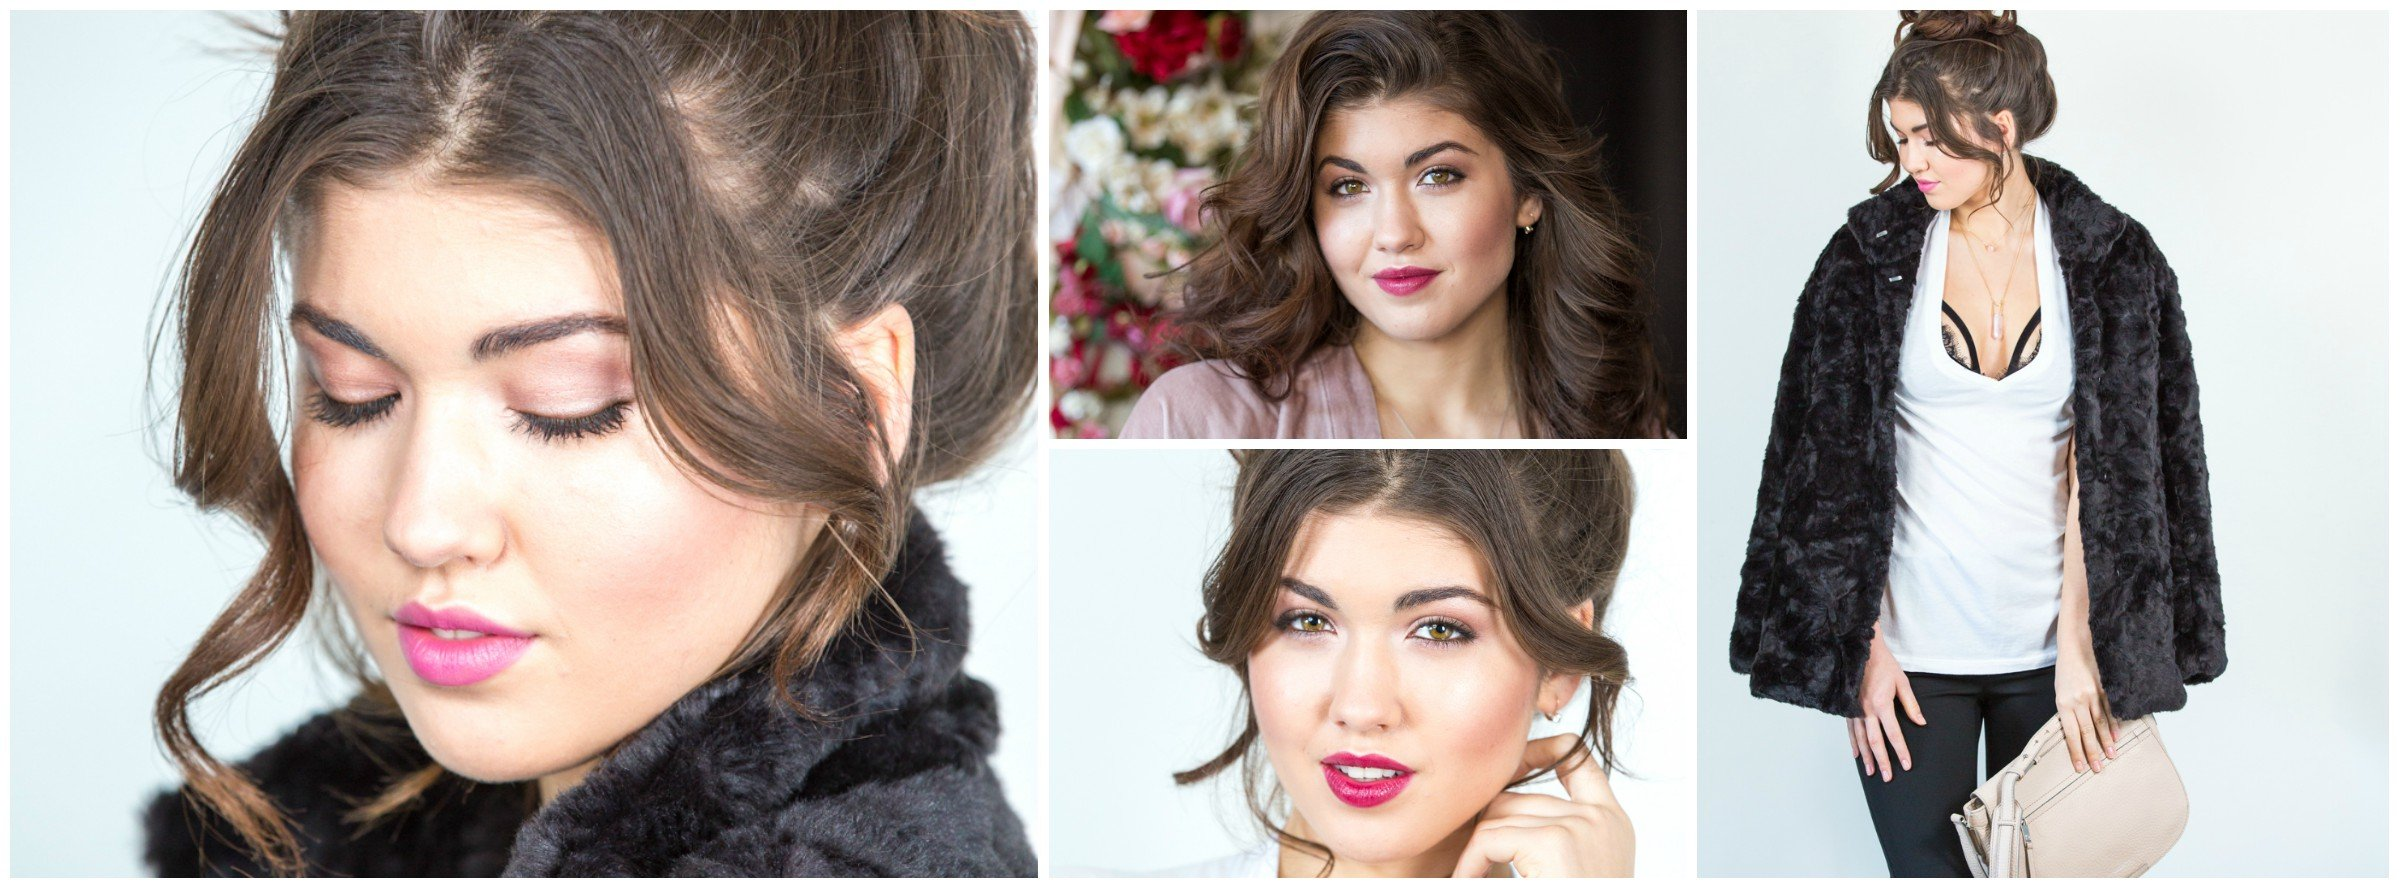 Klava Z, Ottawa makeup artist created natural beauty makeup with a shimmery brown eyes and pink lavender lips using only natural cosmetics. A fun collage of behind the scenes images from the photoshoot, styled outfit shots and model with beautiful makeup.